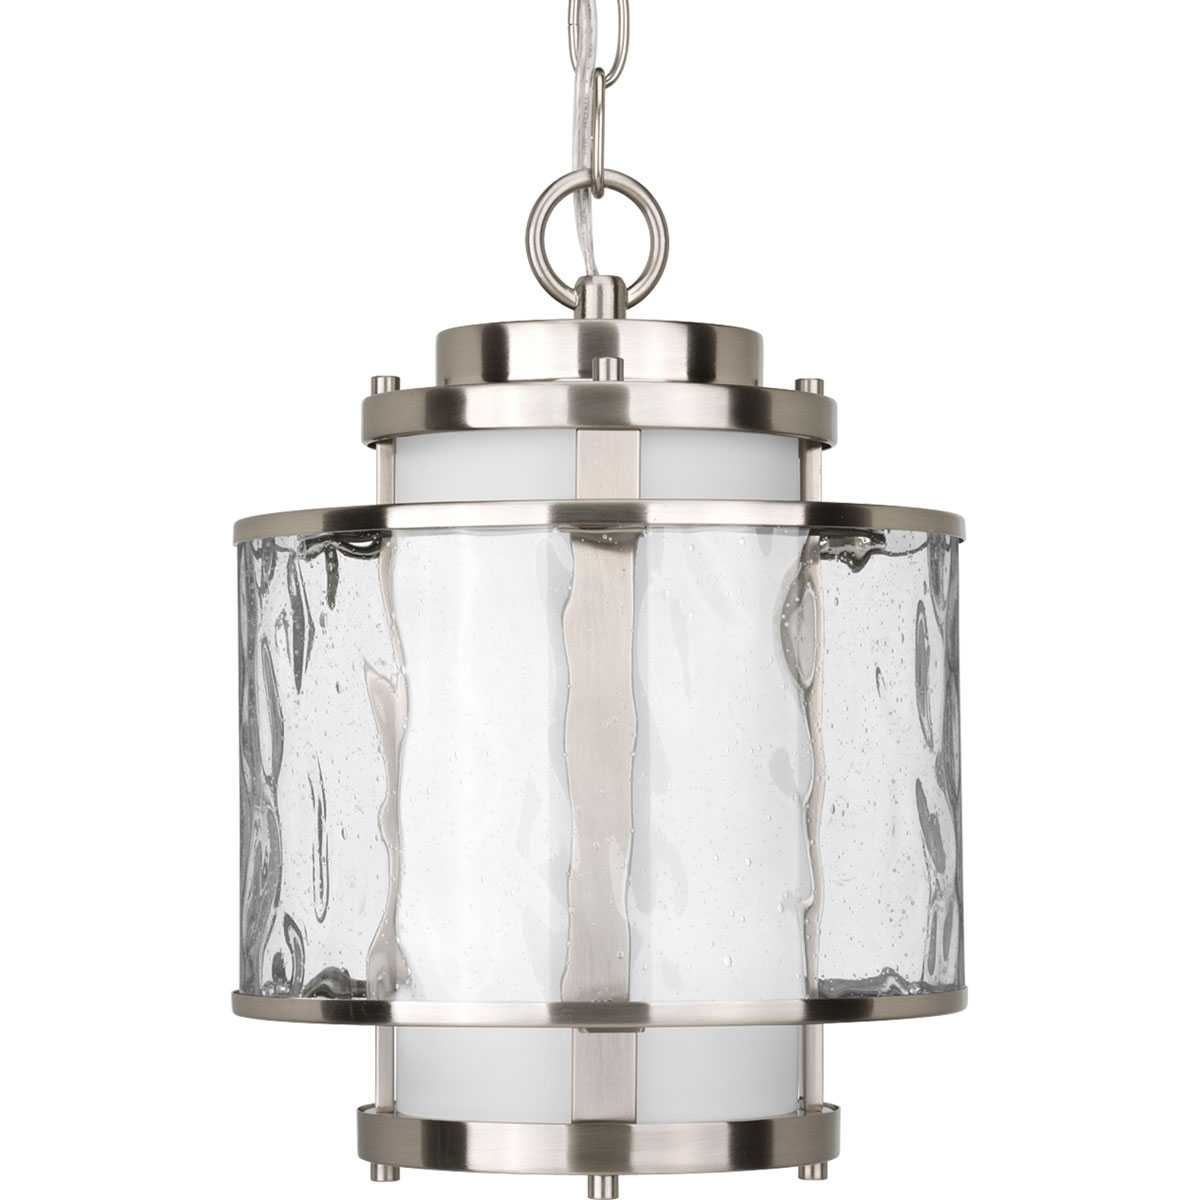 Outdoor Hanging Lighting Fixtures With Regard To Most Recent Outdoor Hanging Light Fixtures Lights String Parts 2018 And (View 12 of 20)